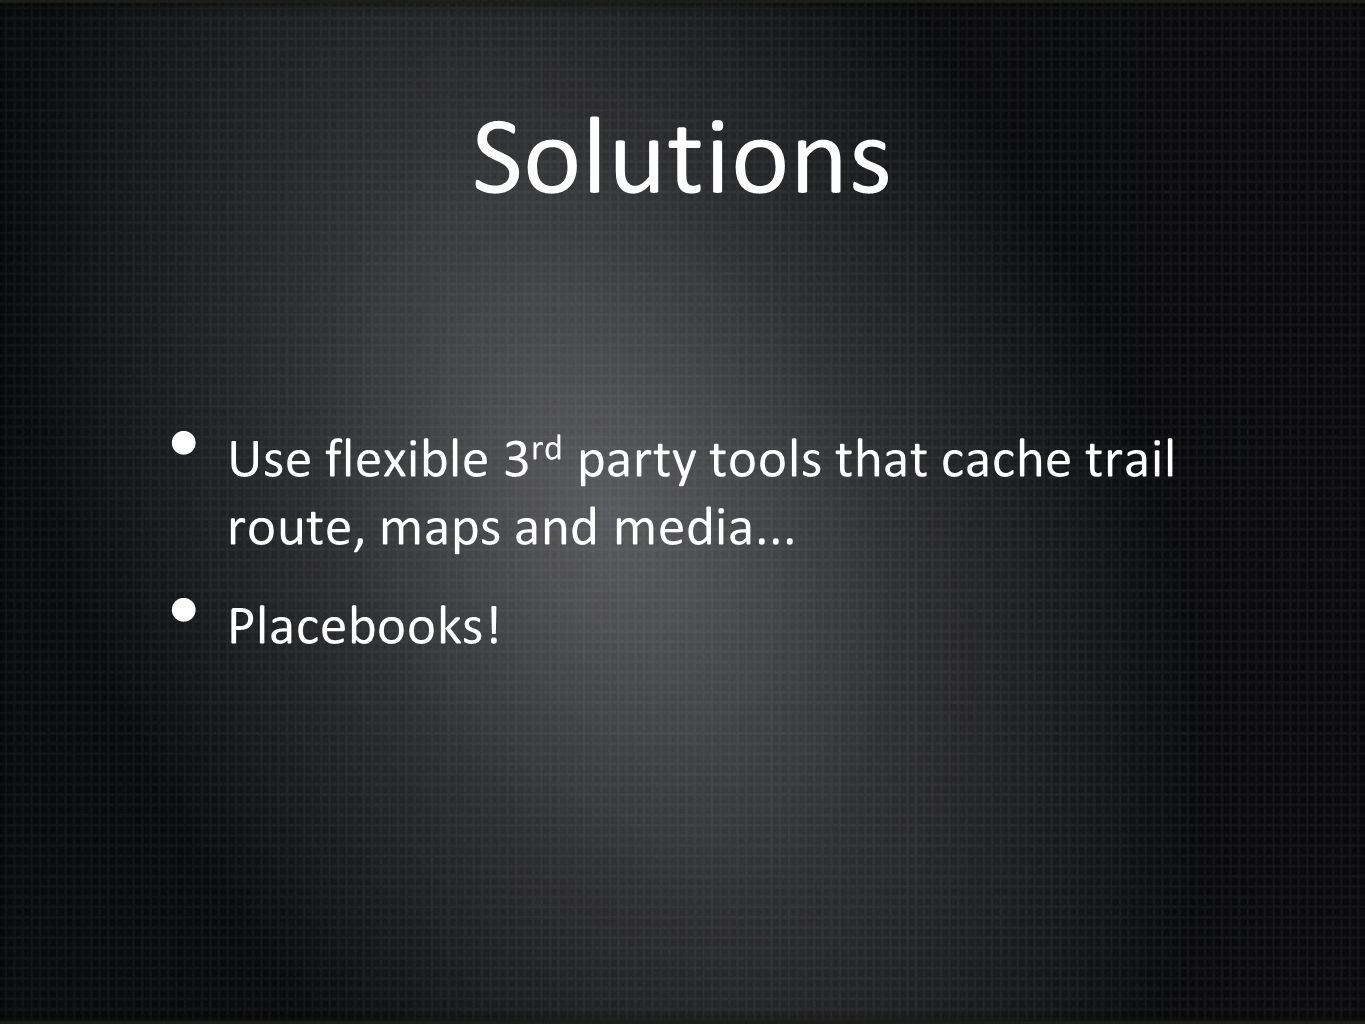 Solutions Use flexible 3rd party tools that cache trail route, maps and media... Placebooks!